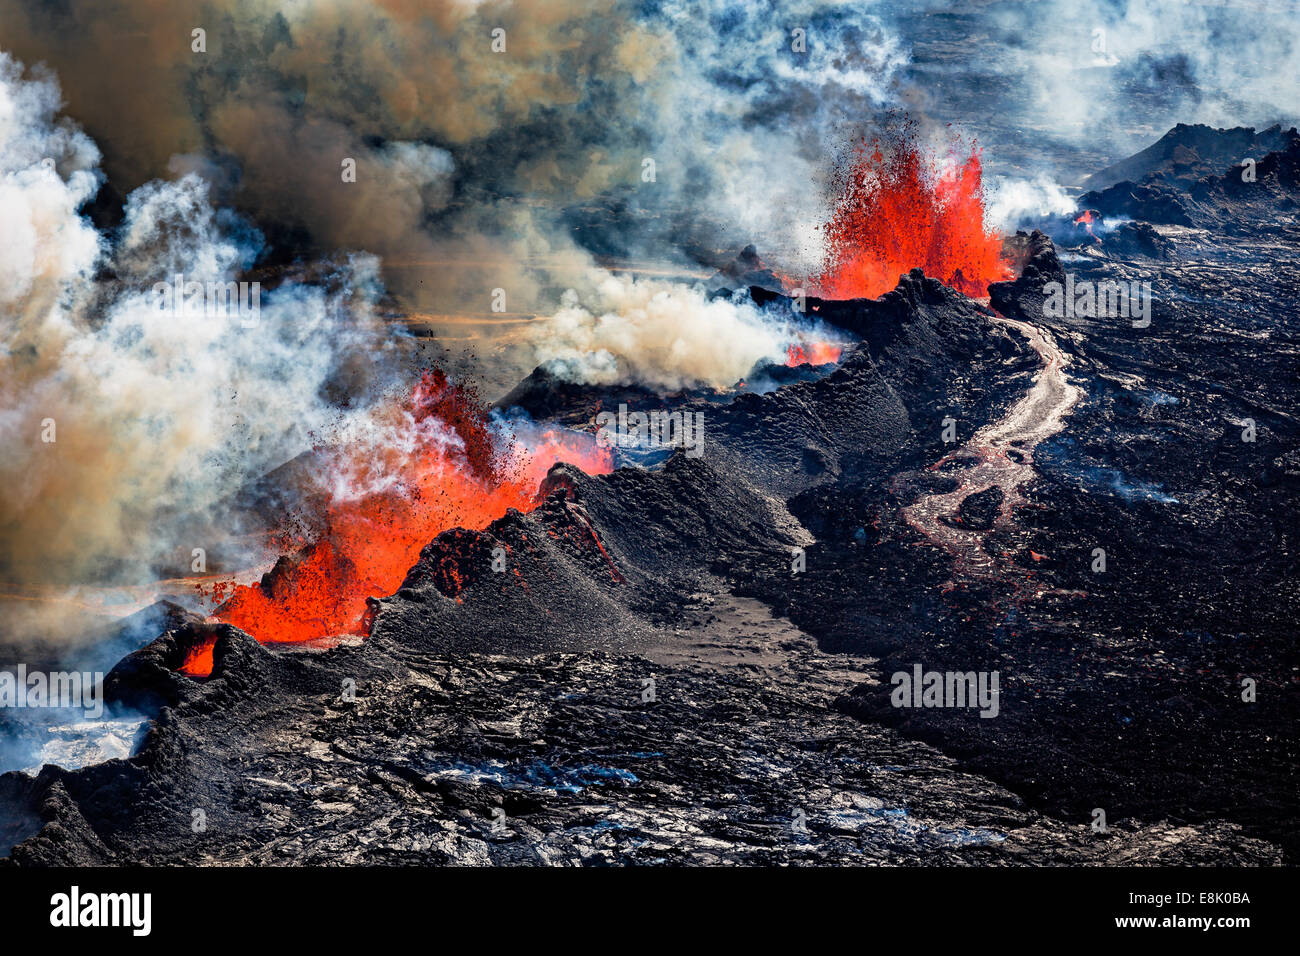 Volcano Eruption at the Holuhraun Fissure near Bardarbunga Volcano, Iceland. - Stock Image